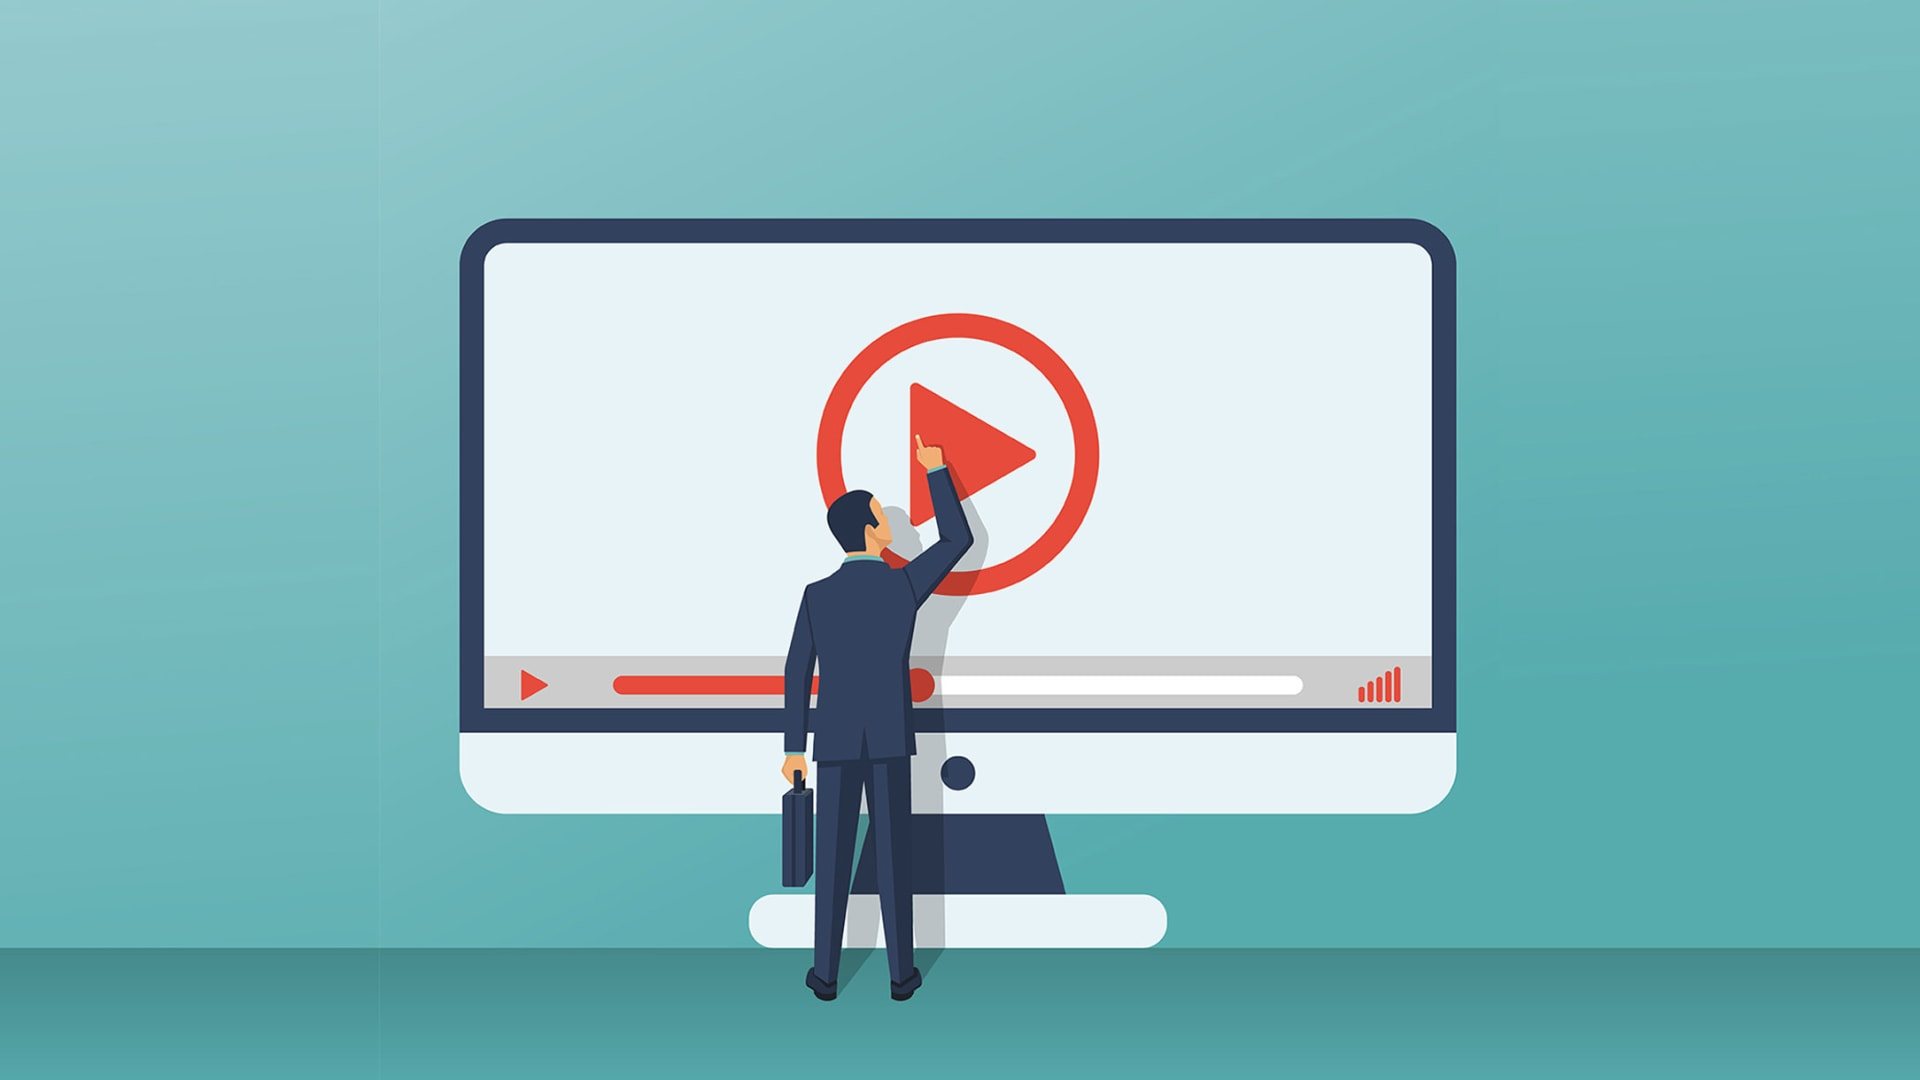 Proven Tips to Attract Leads and Build Authority With Video Marketing